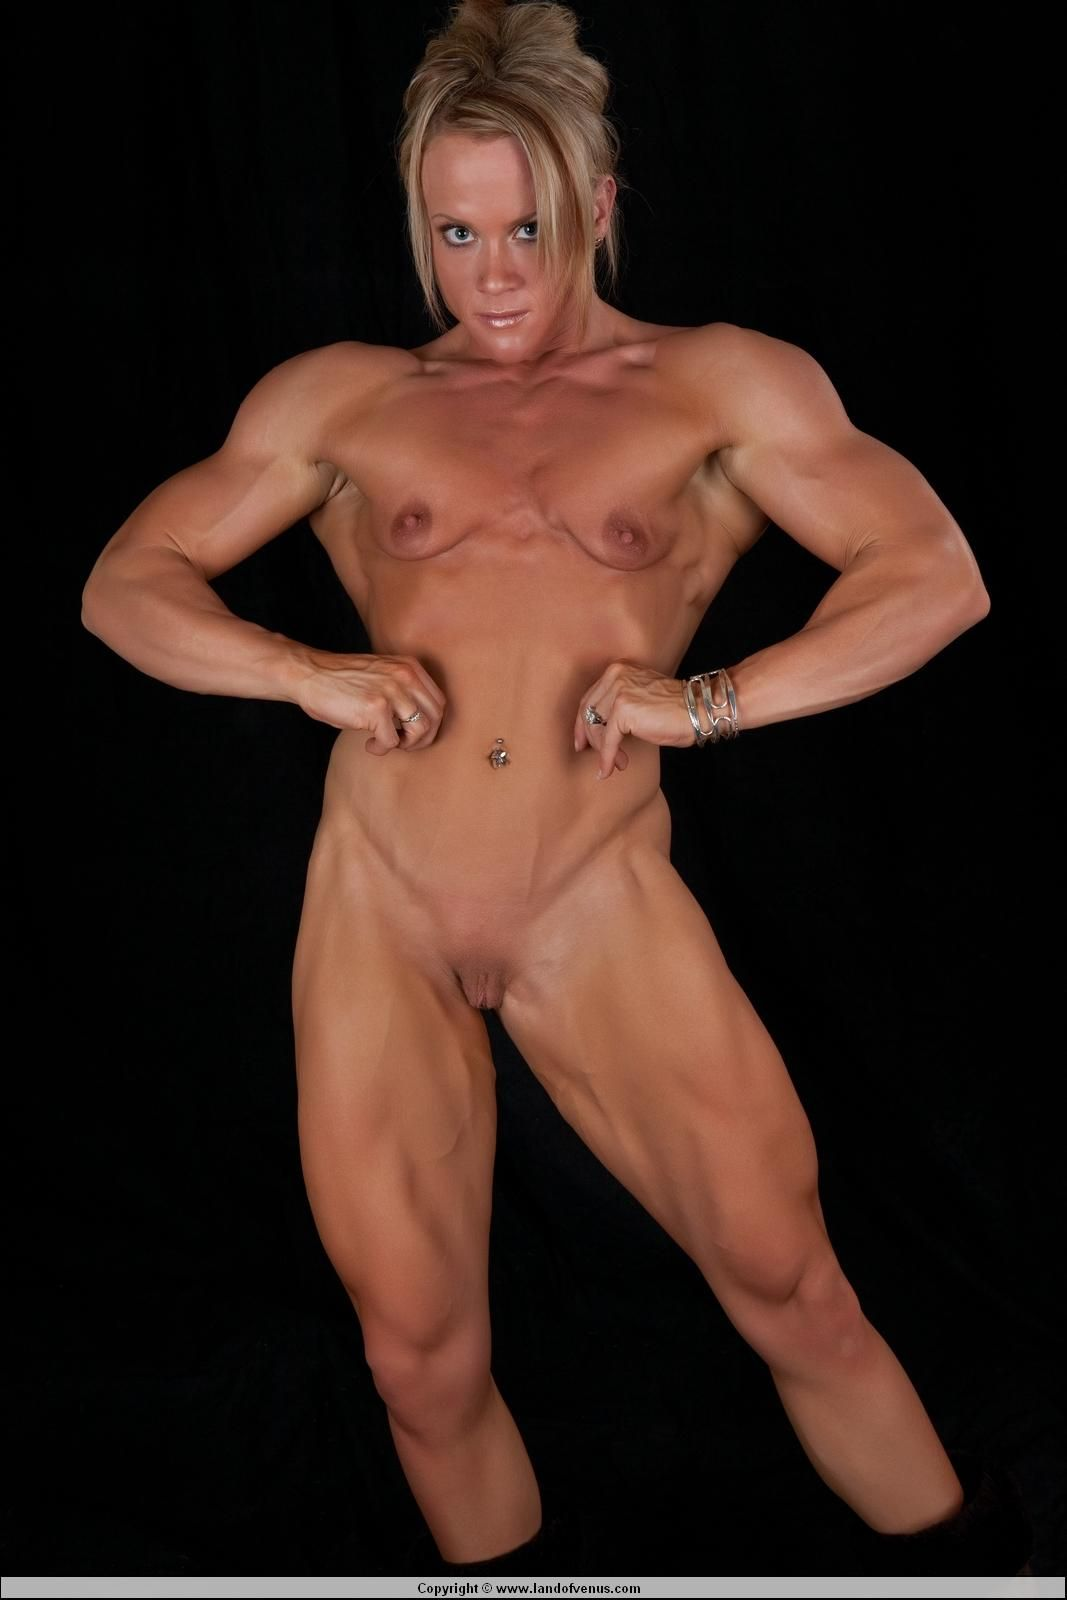 Nakes women bodybuilders